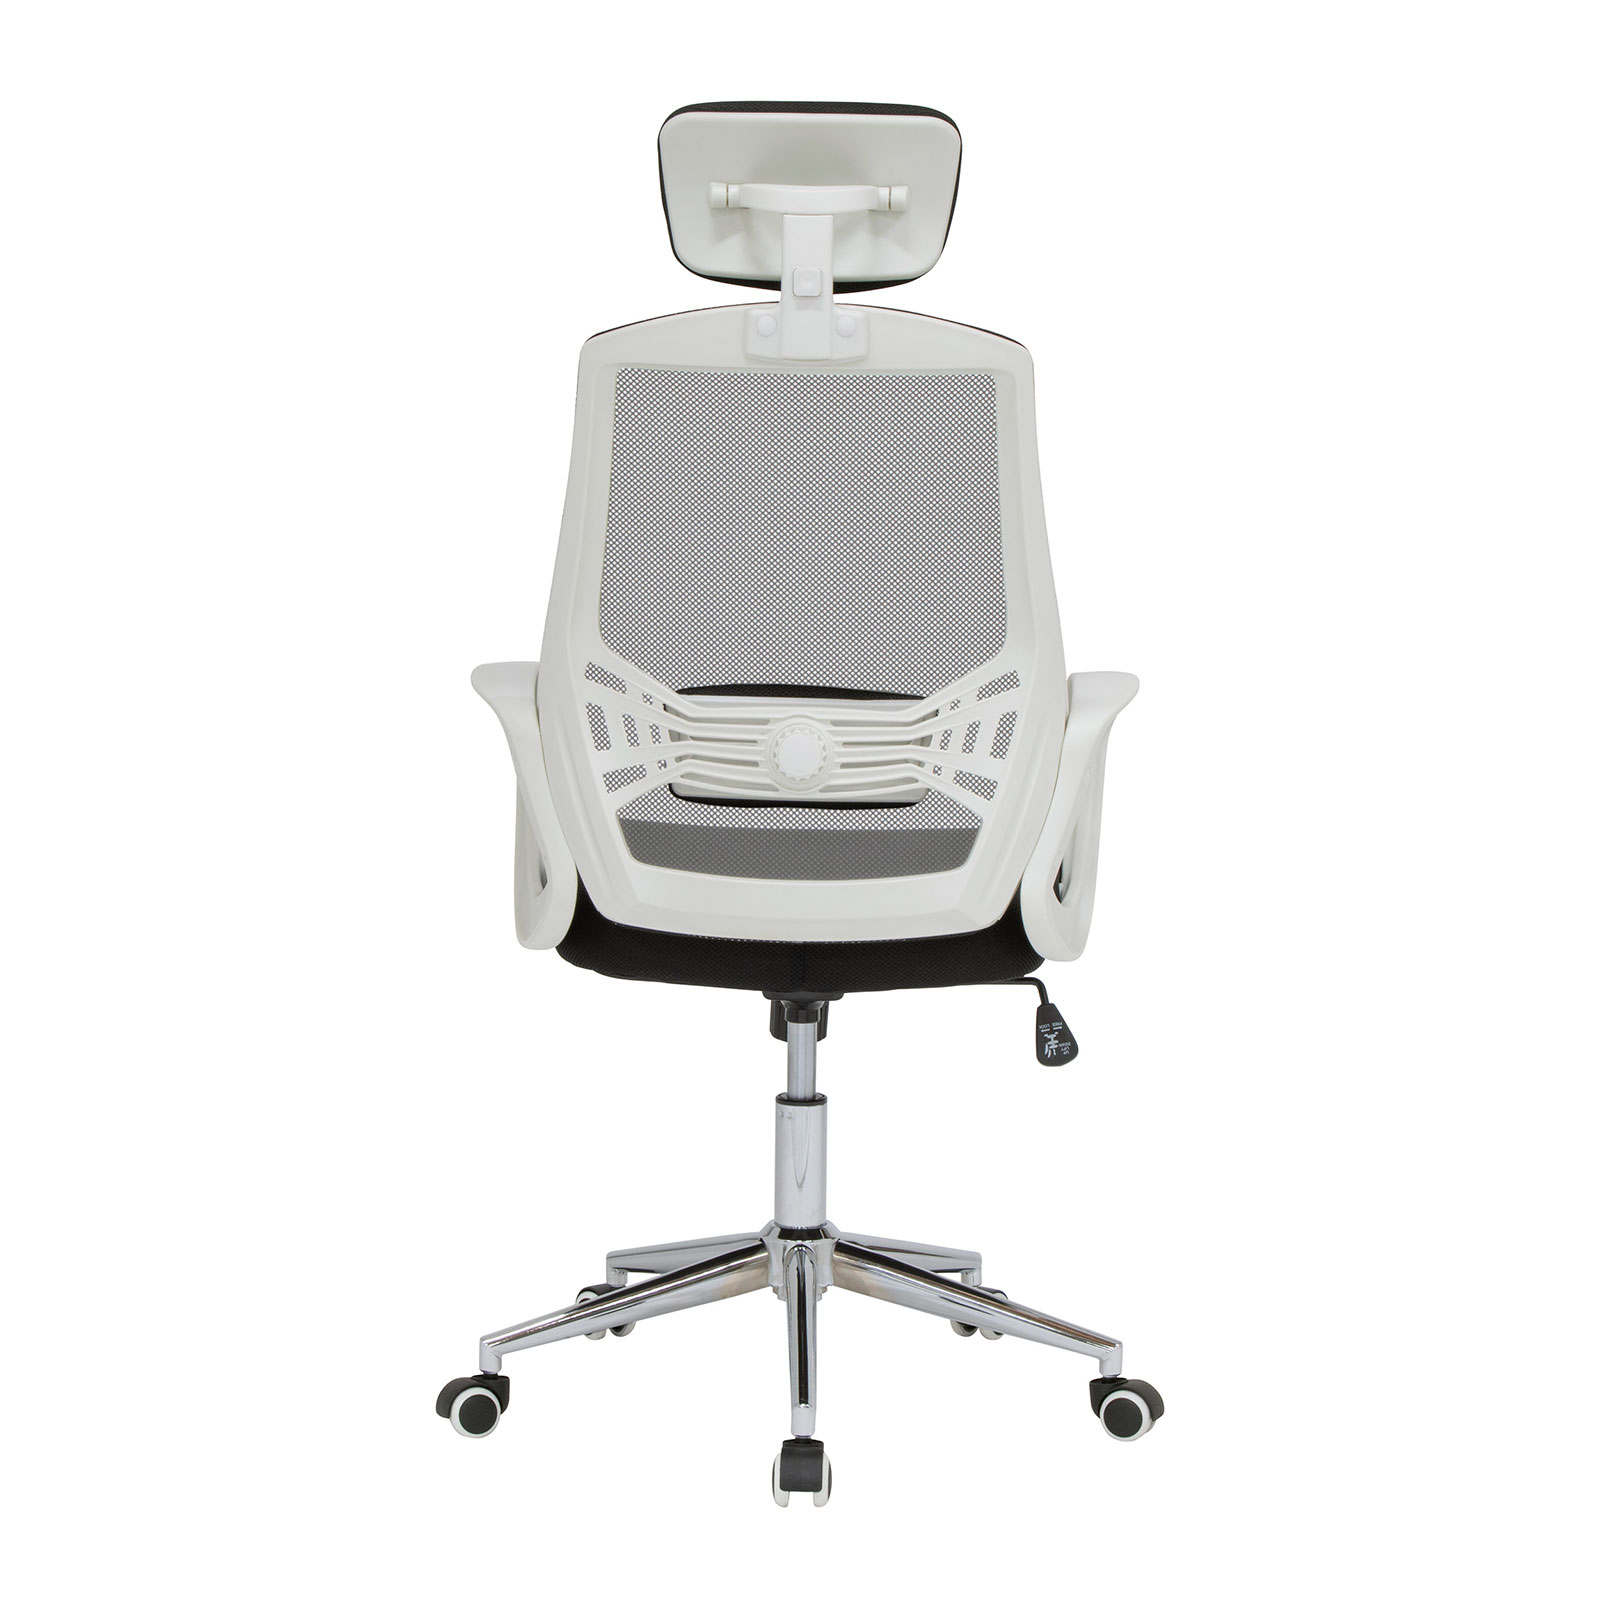 10663-High-Back-Mesh-Managers-Chair-rear